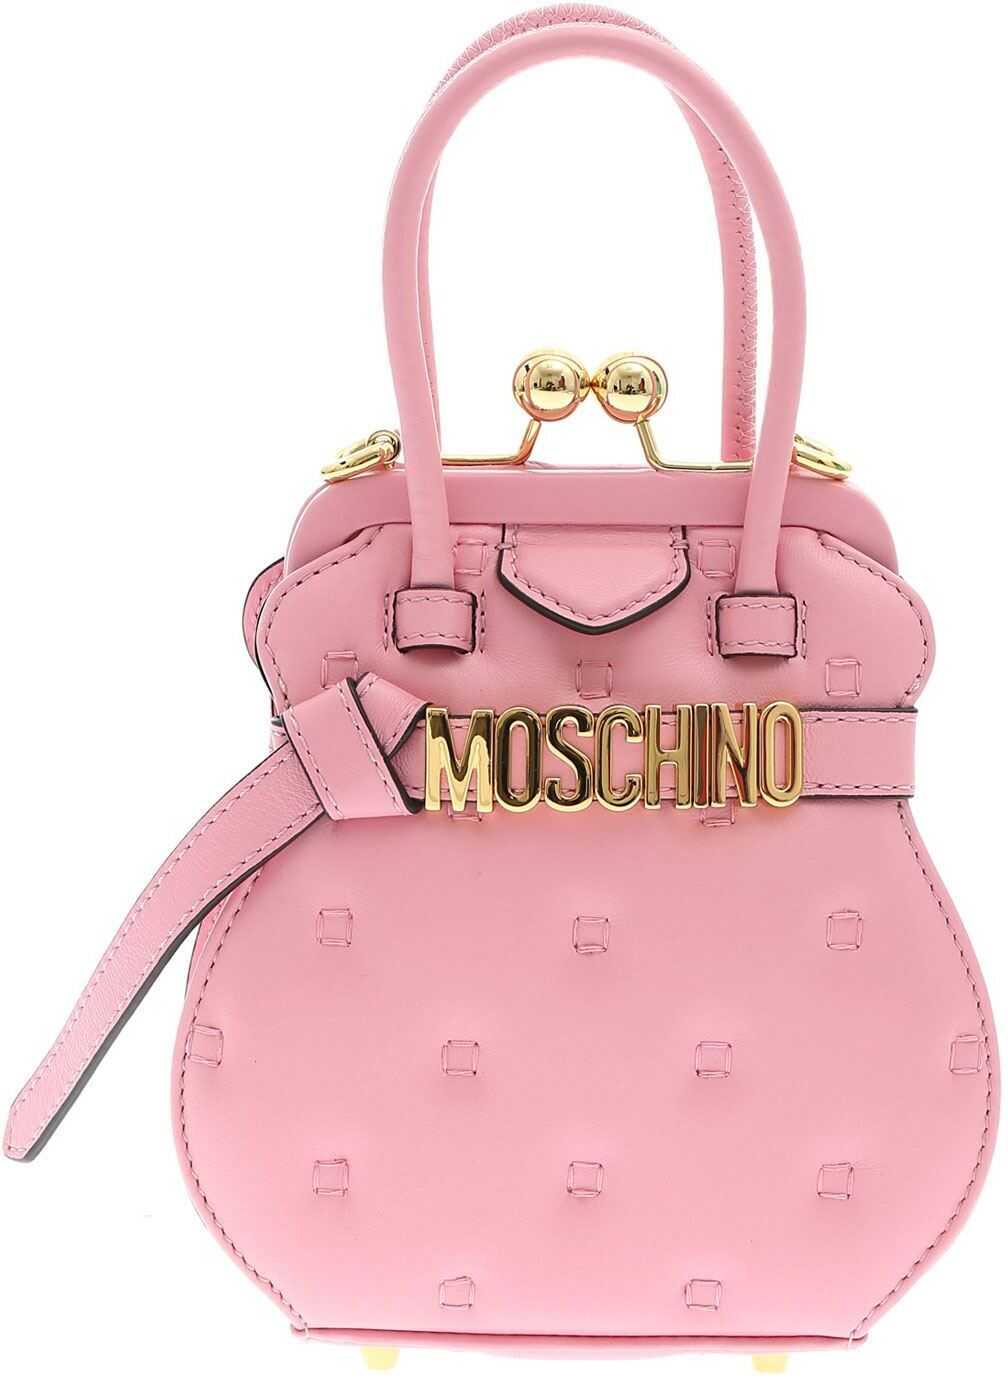 Moschino Inside Out Quilting Handbag In Pink 753280021222 Pink imagine b-mall.ro